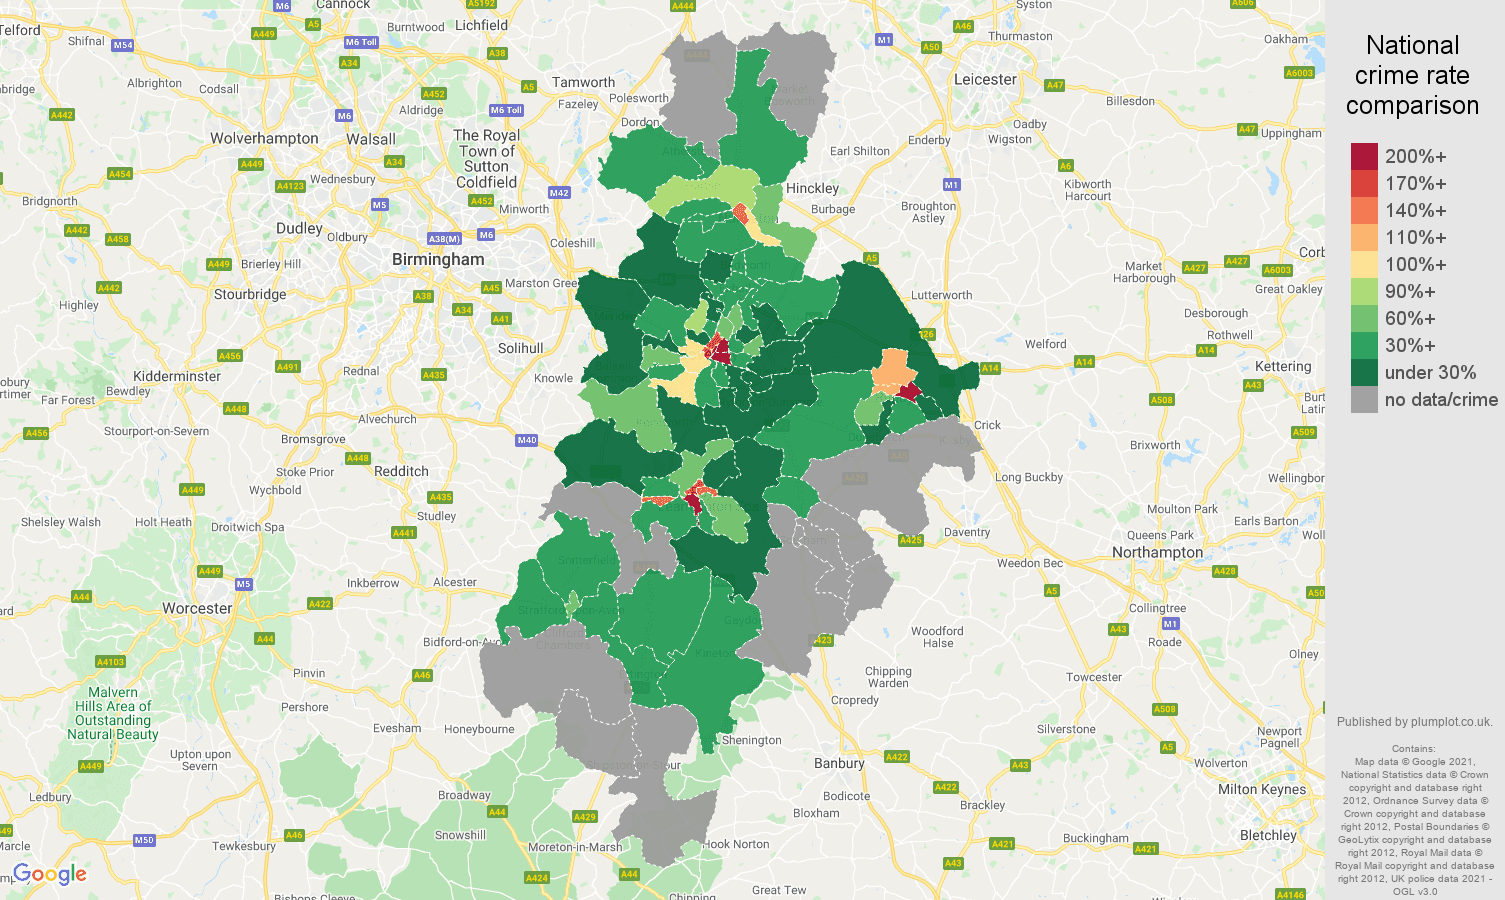 Coventry bicycle theft crime rate comparison map